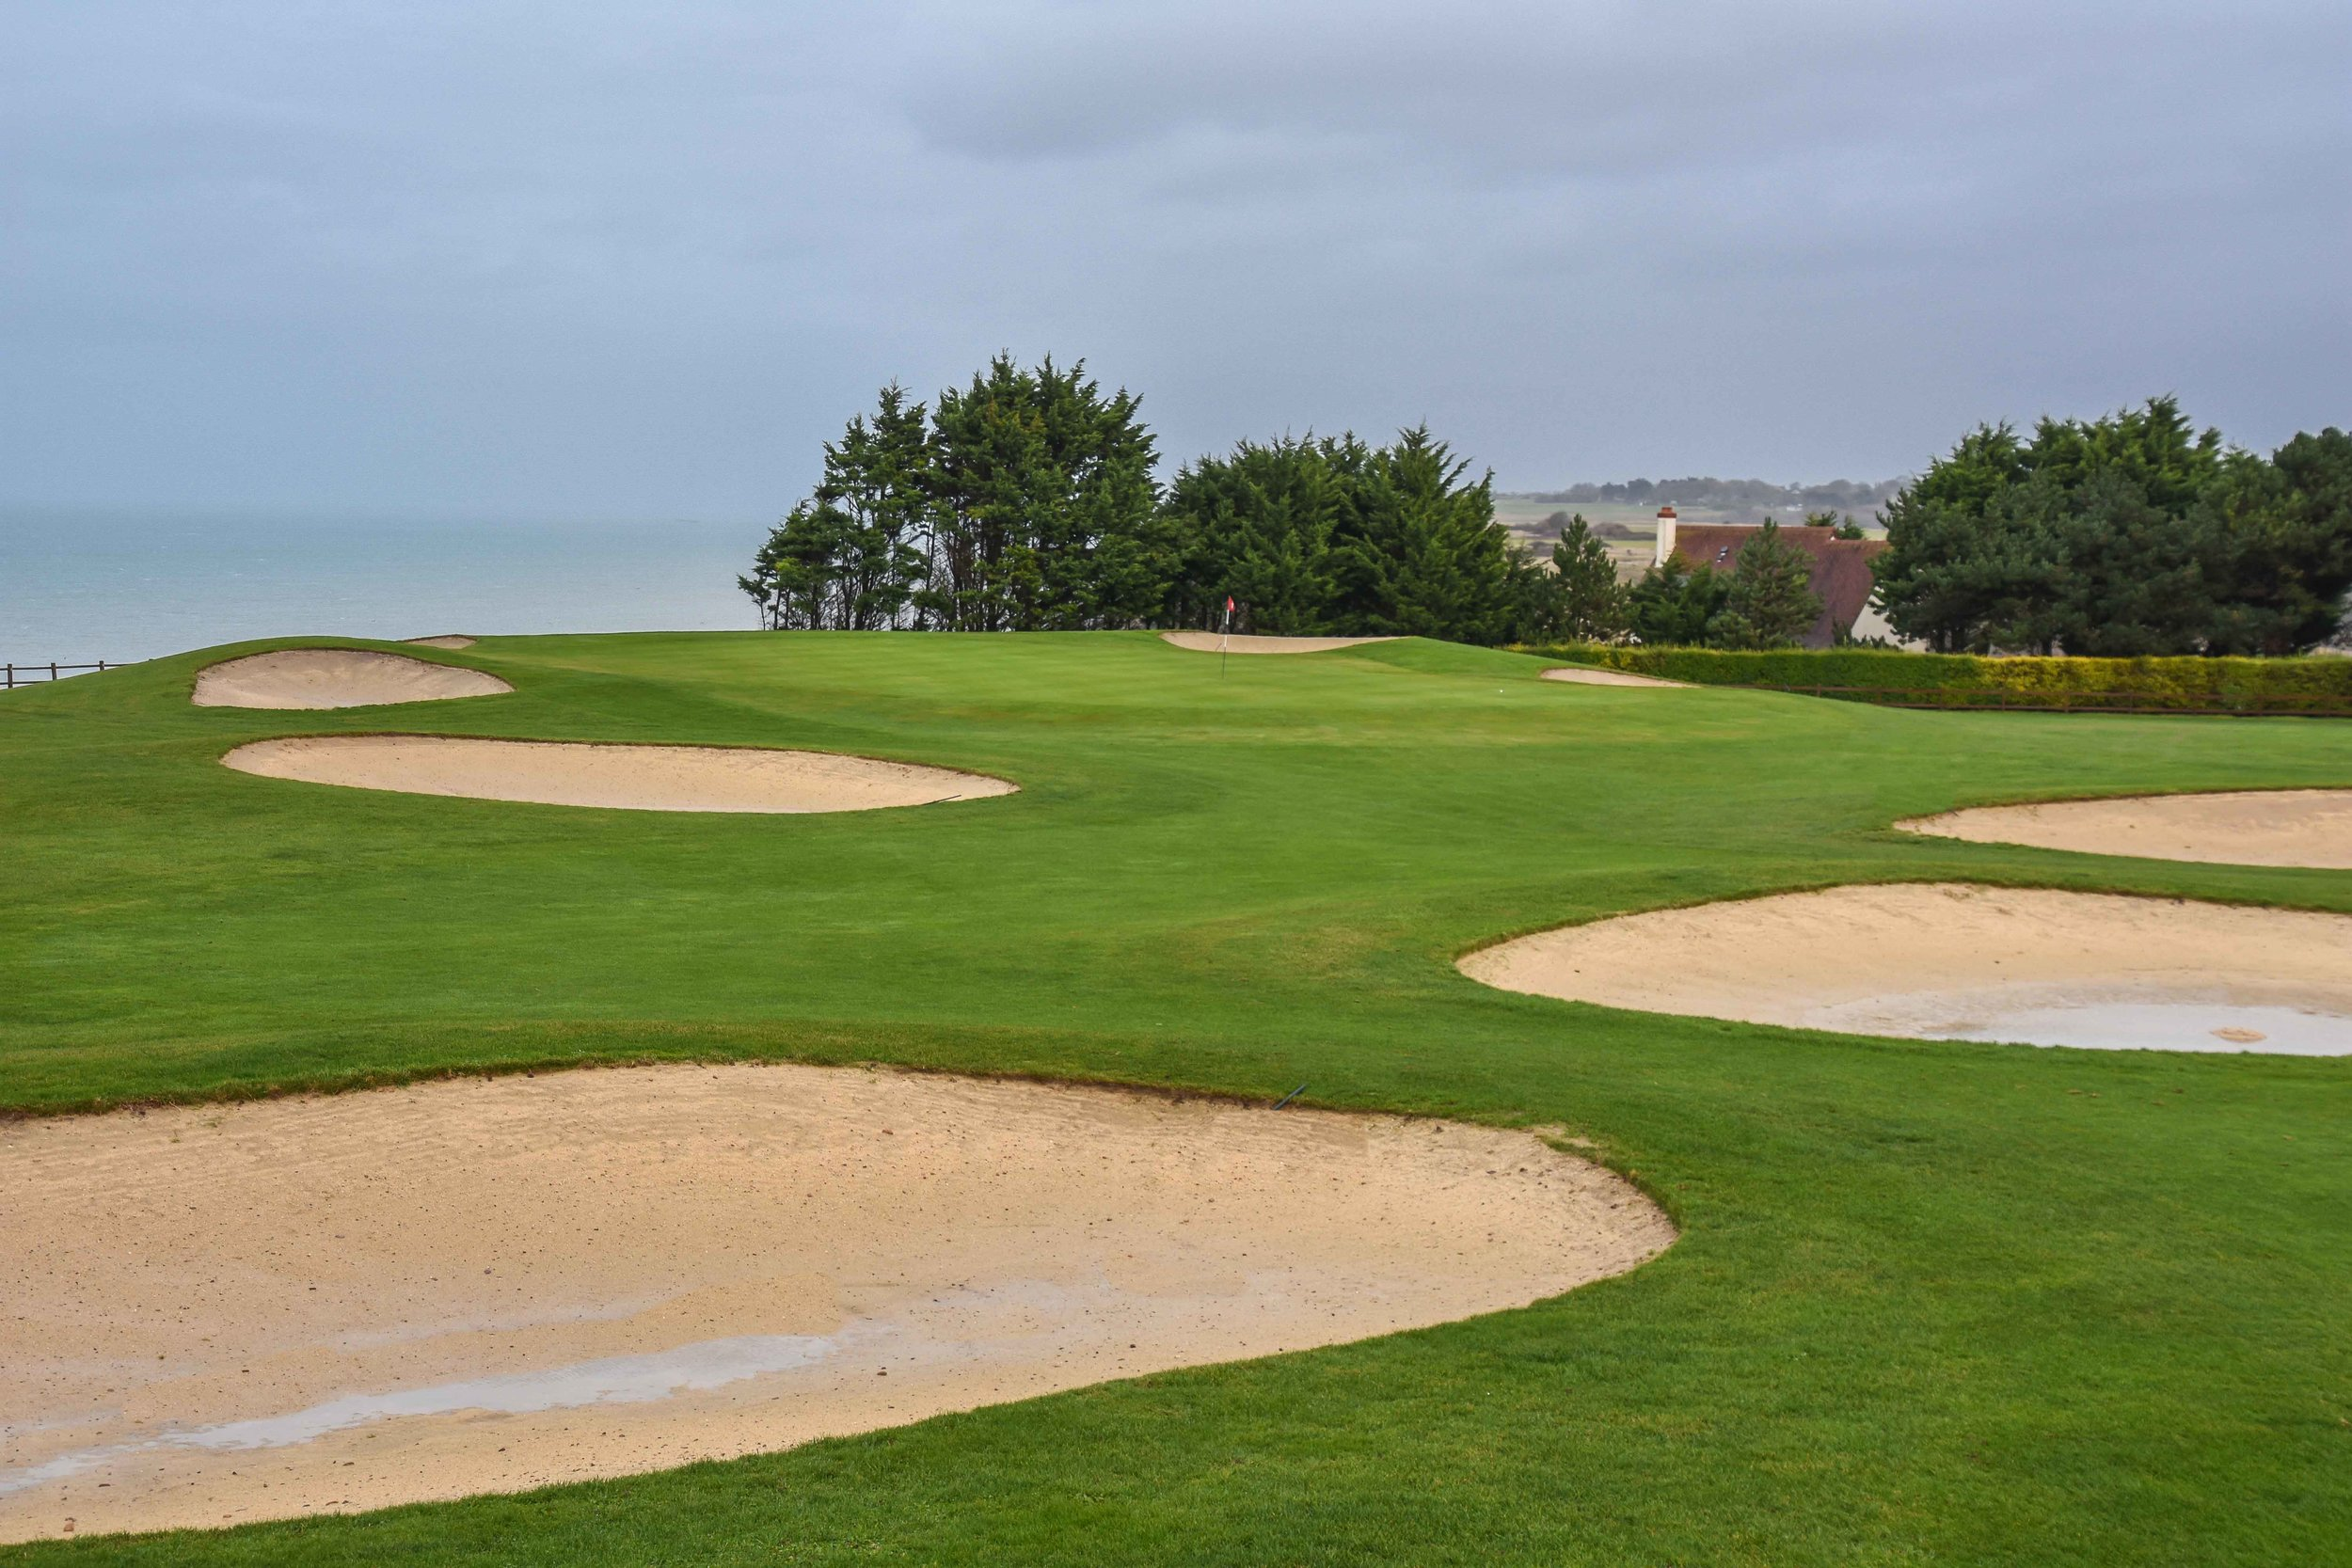 The 6th hole finishes right on the edge of the bluff overlooking the sea.